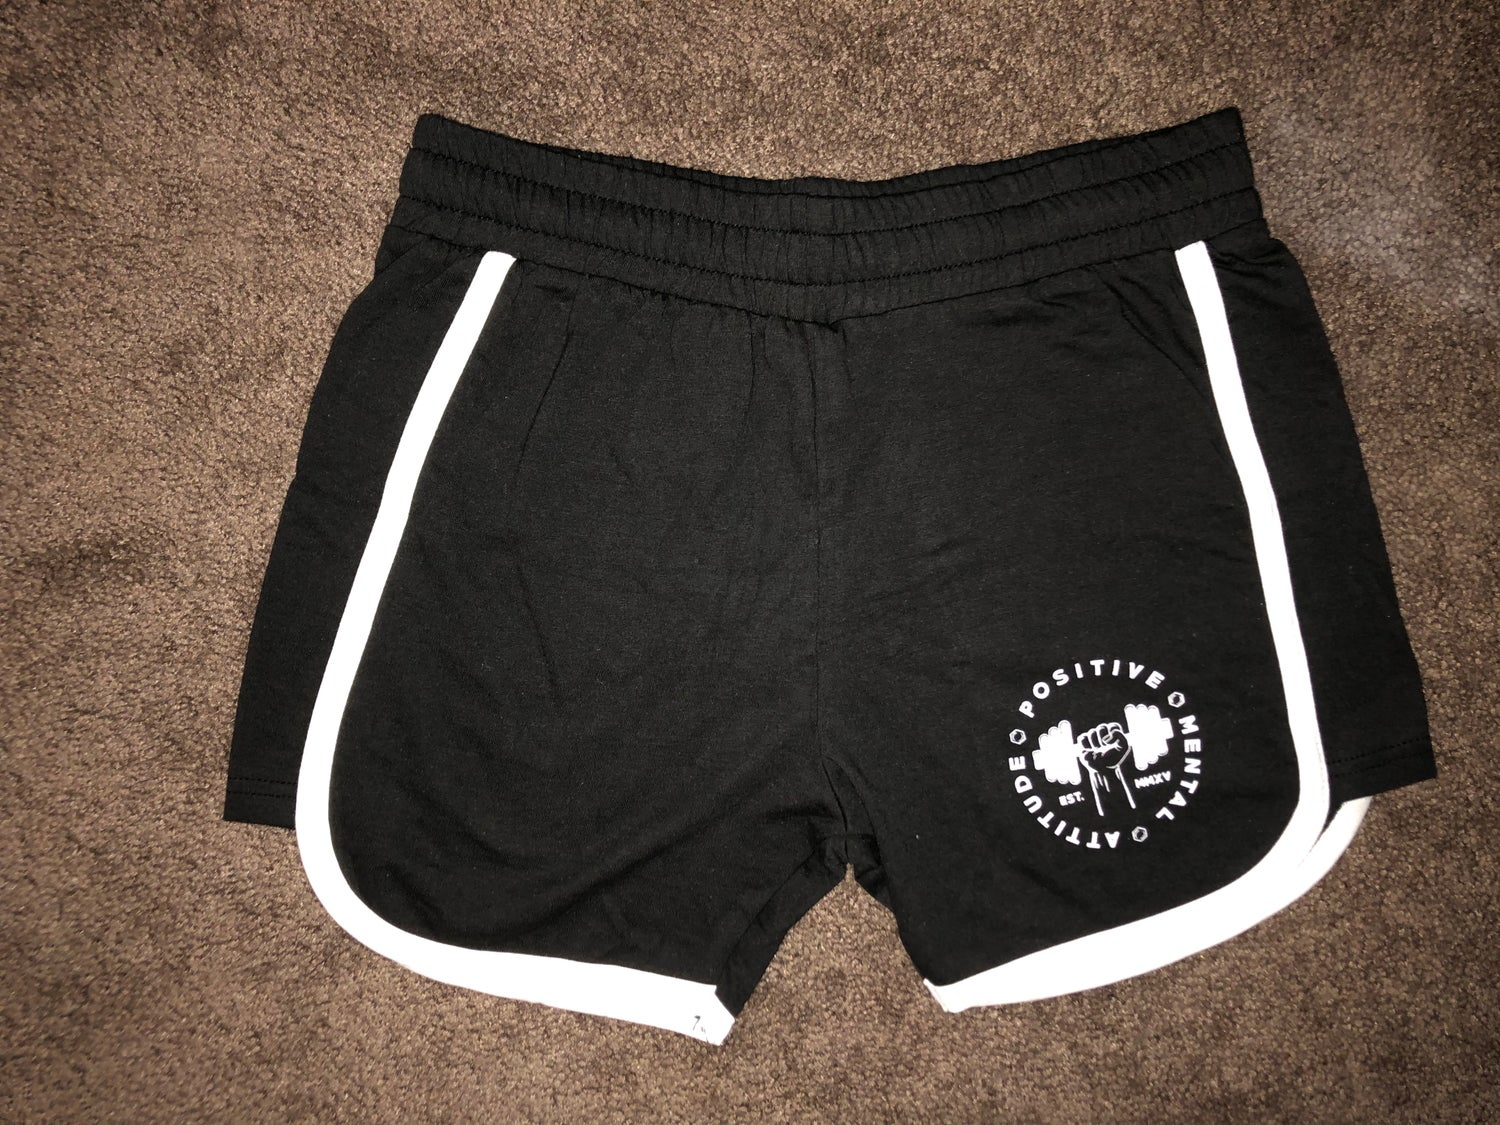 Image of Women's PMA Fitwear Booty Shorts